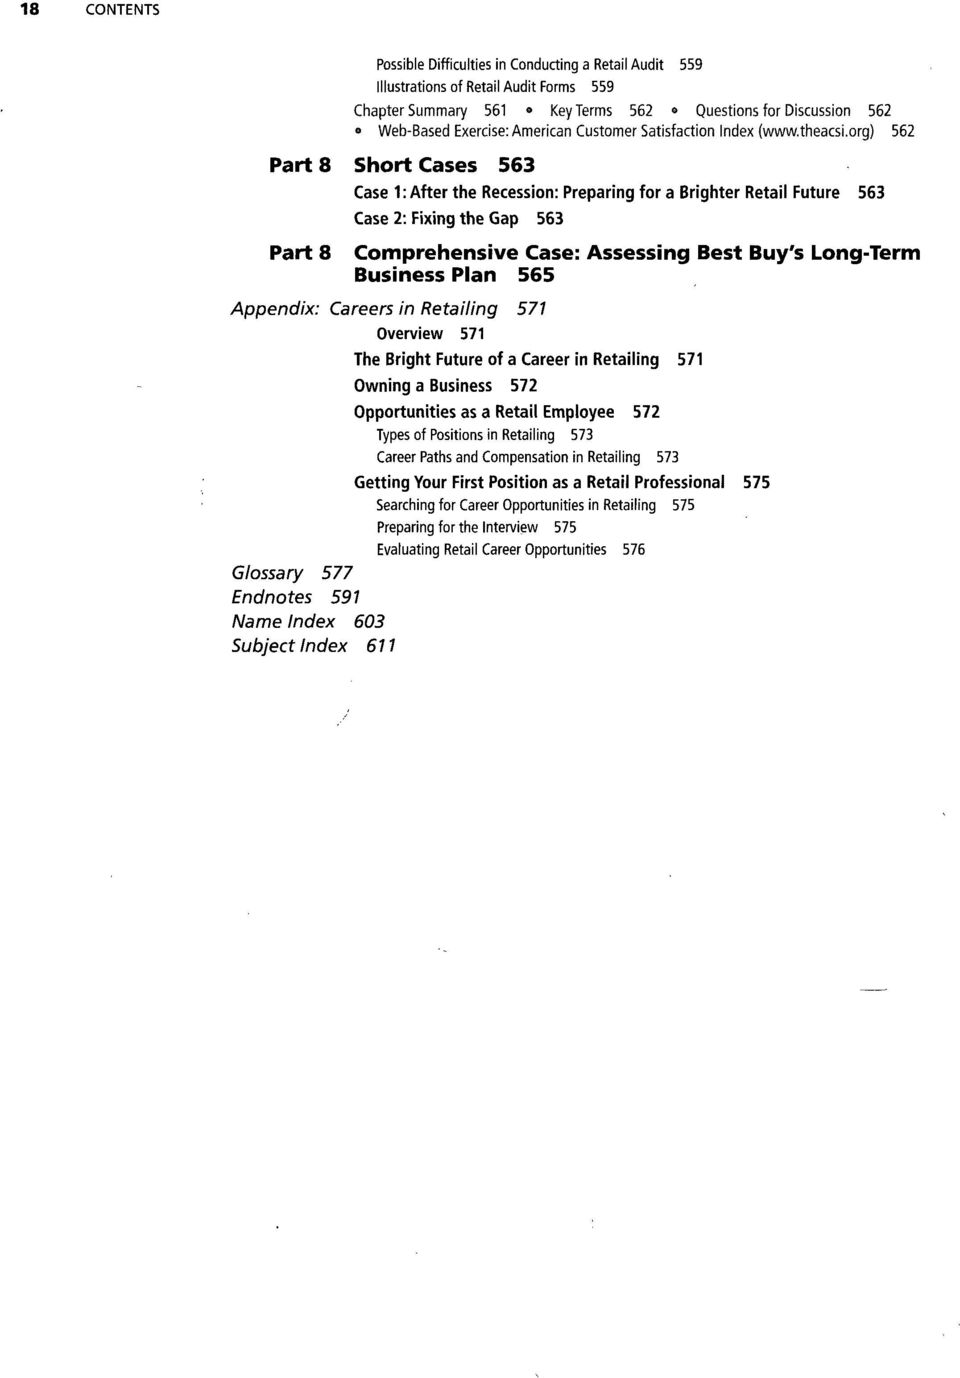 a strategic approach pearson pdf org 562 part 8 short cases 563 part 8 case 1 after the recession